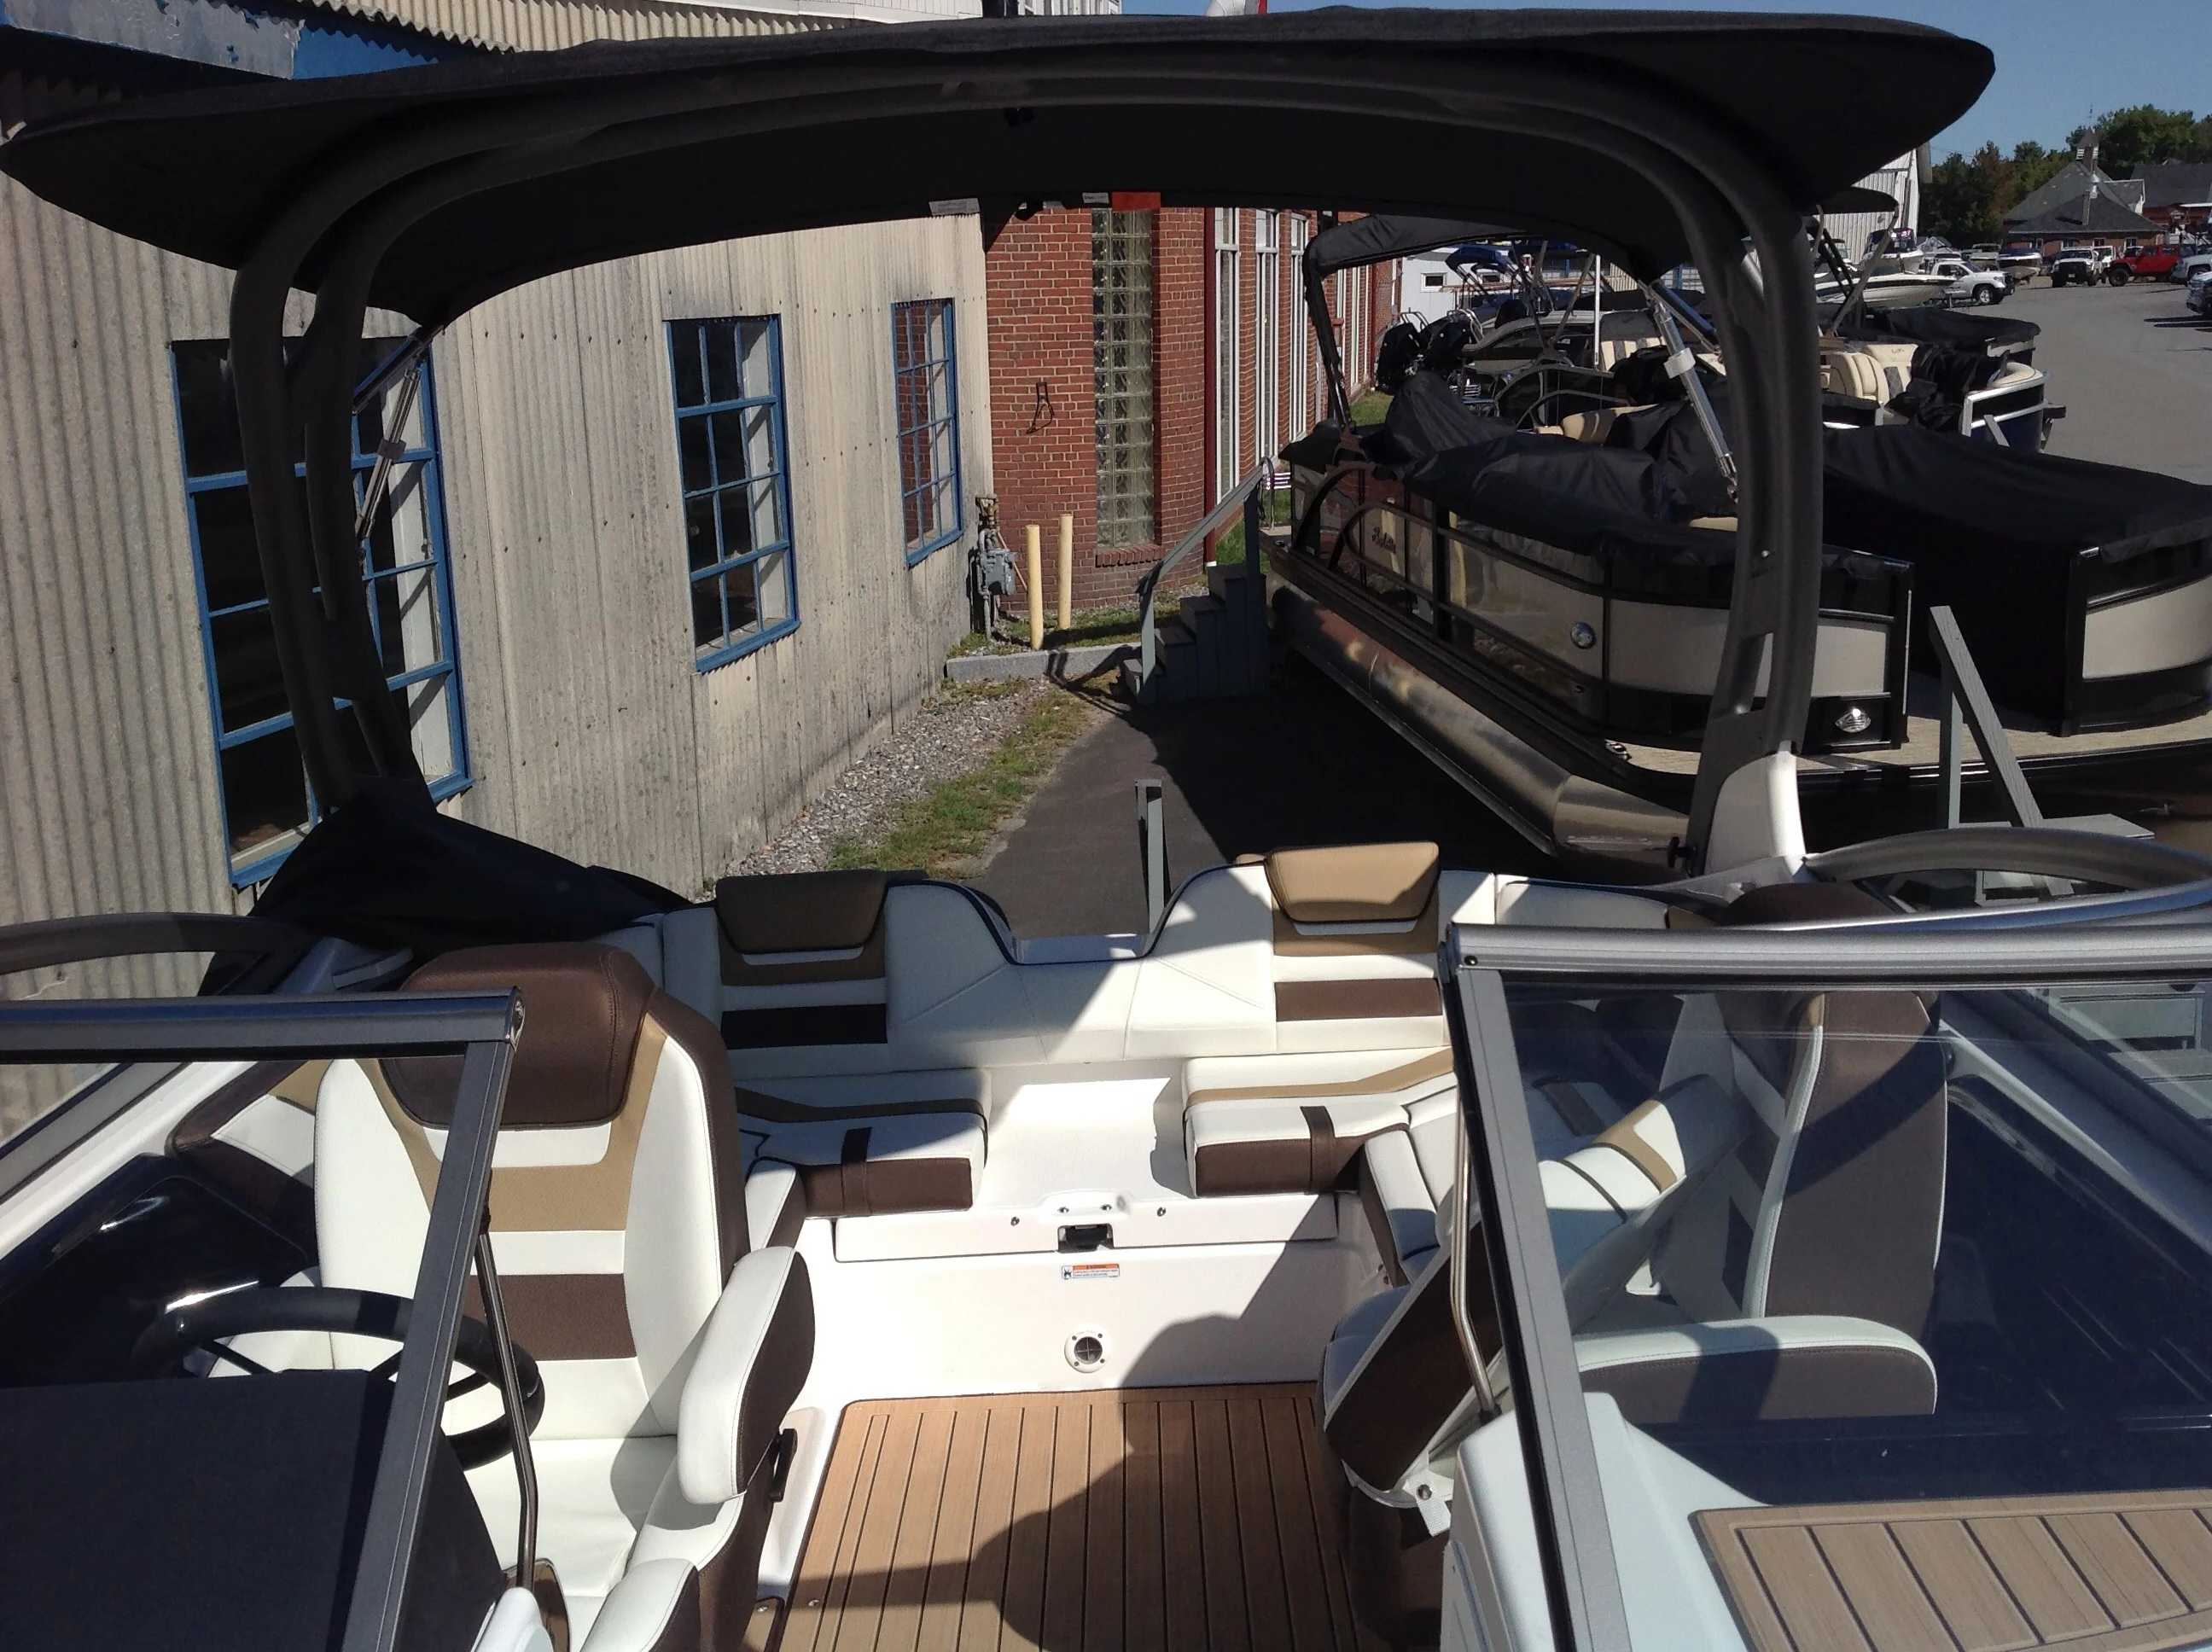 2021 Yamaha boat for sale, model of the boat is 212se & Image # 6 of 14